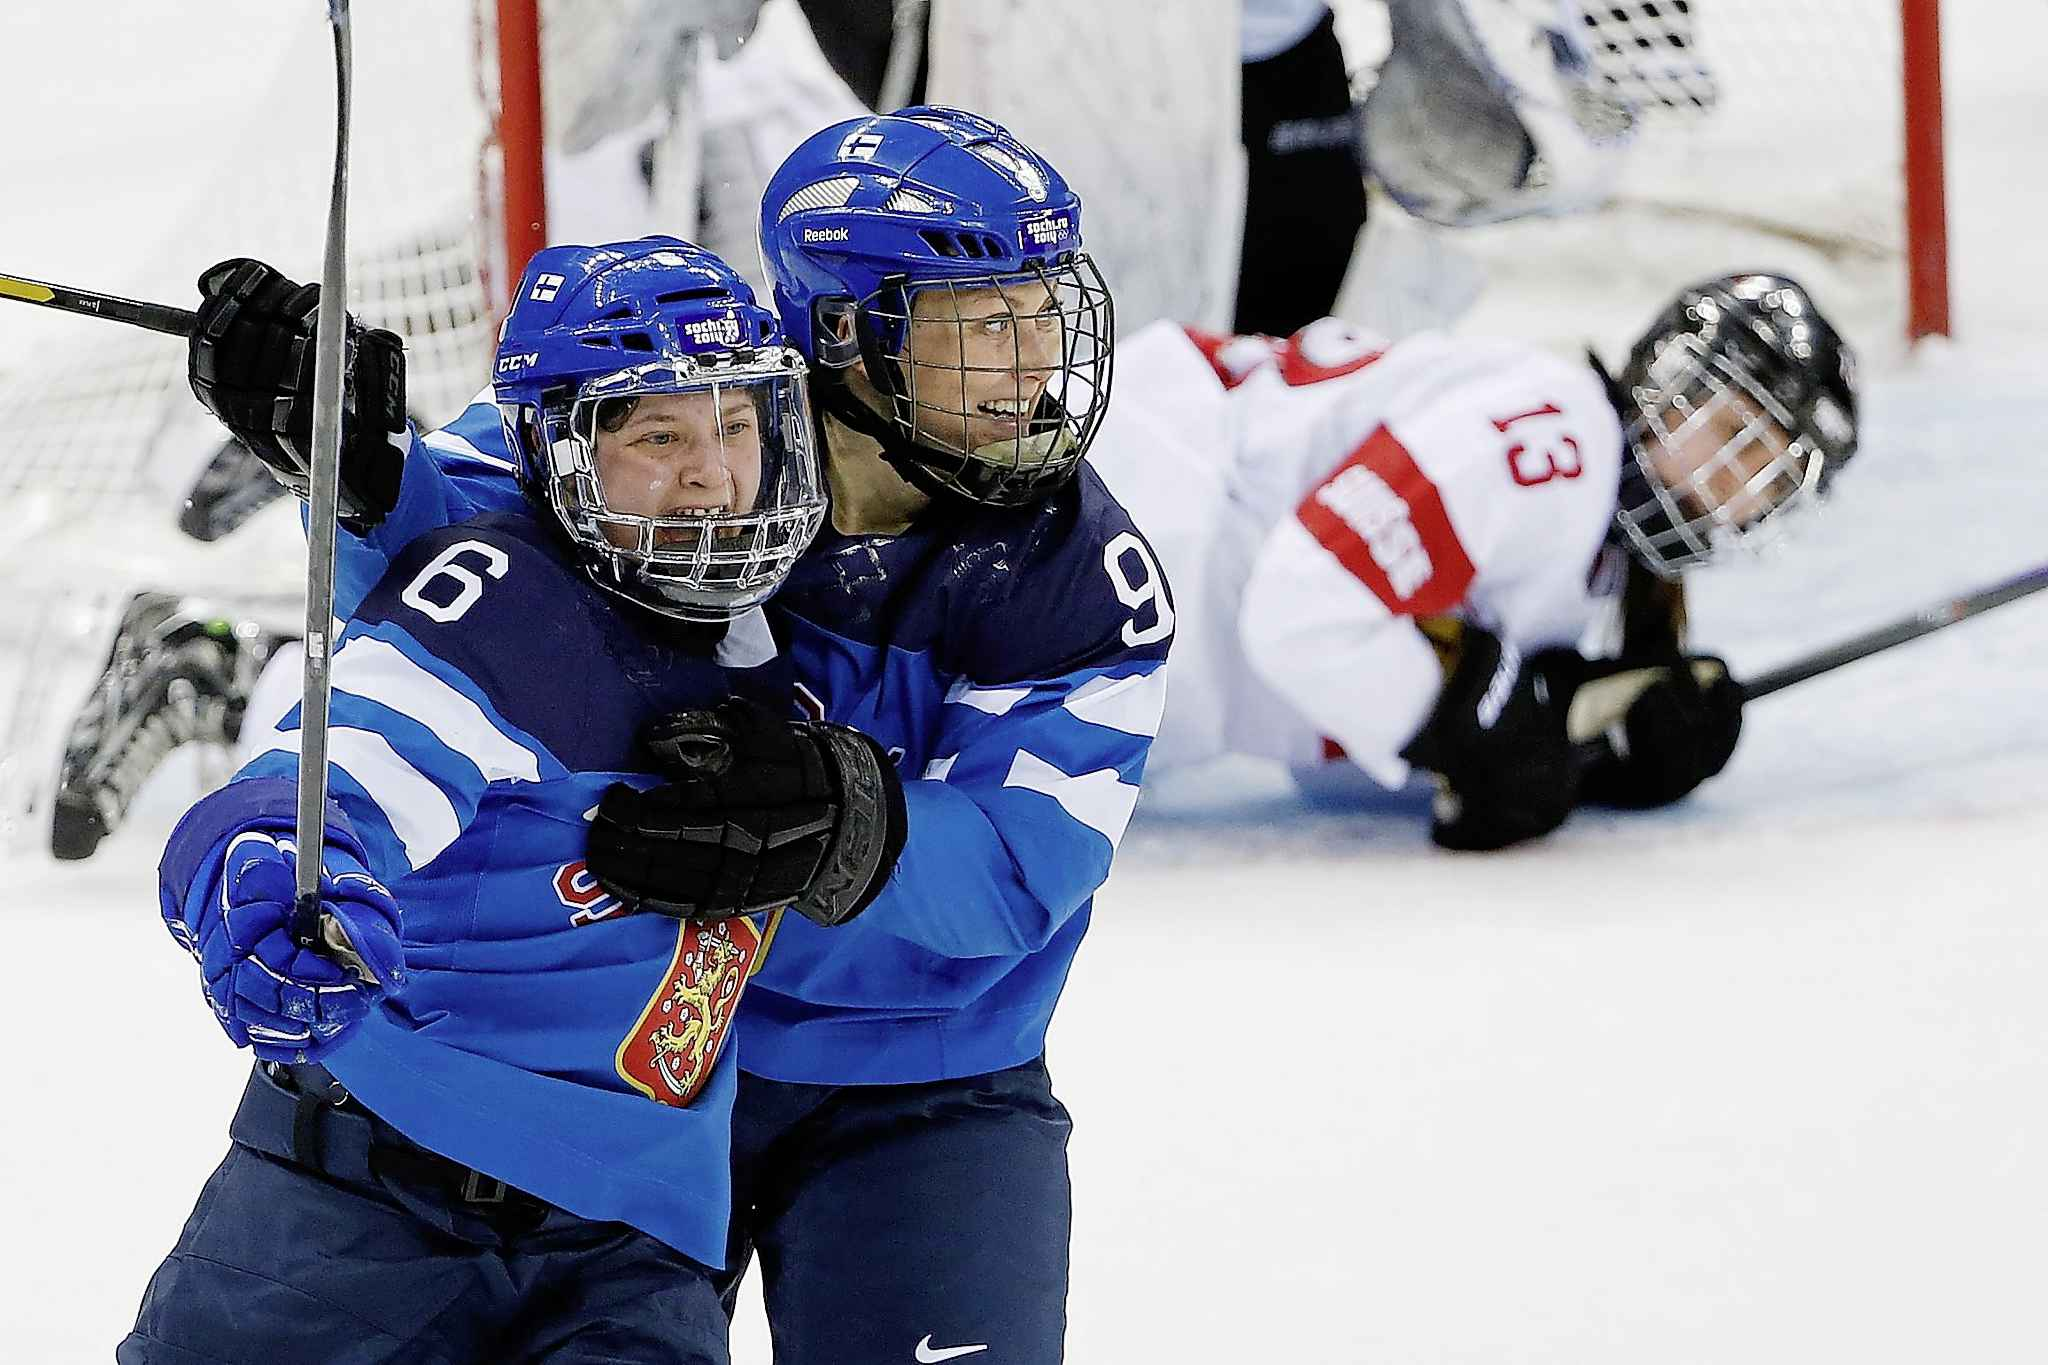 Hovi, right, celebrates a game-winning goal in overtime with teammate Jenni Hiirikoski of Finland during the 2014 Winter Olympics in Sochi, Russia.